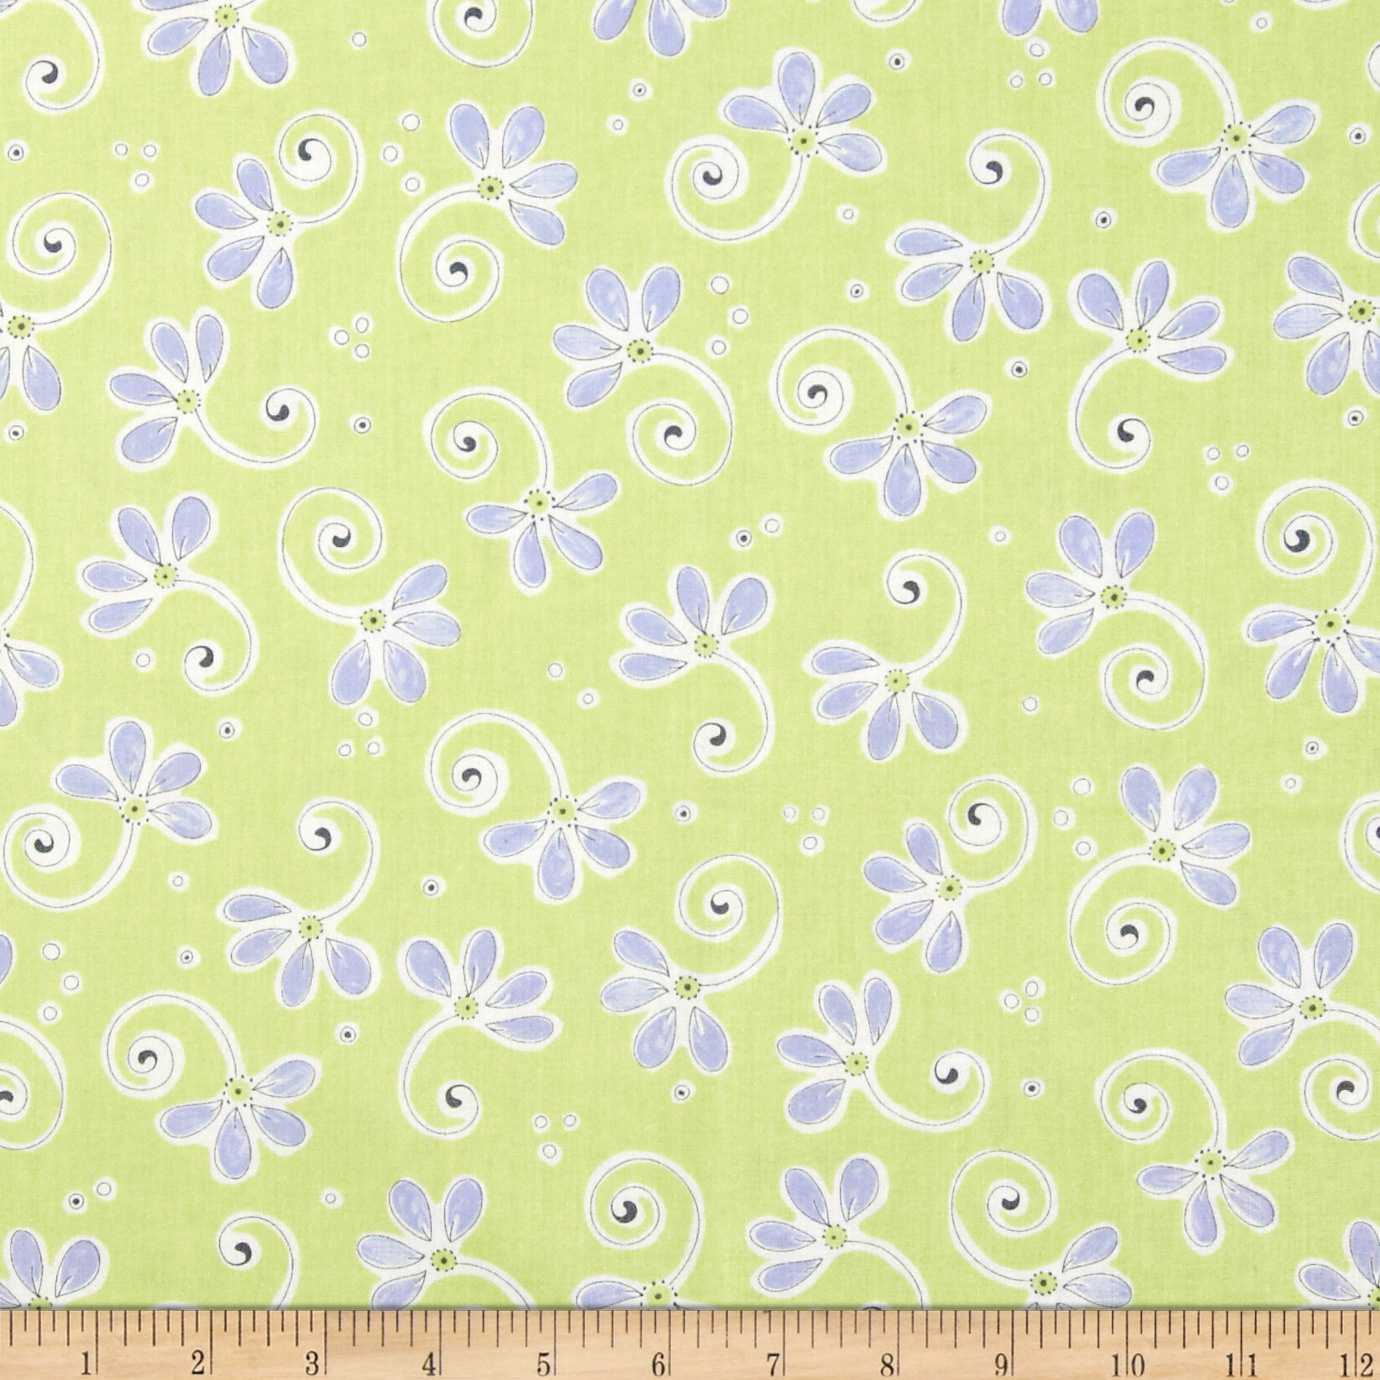 Bird's House Flowers & Stems Green/Periwinkle Fabric